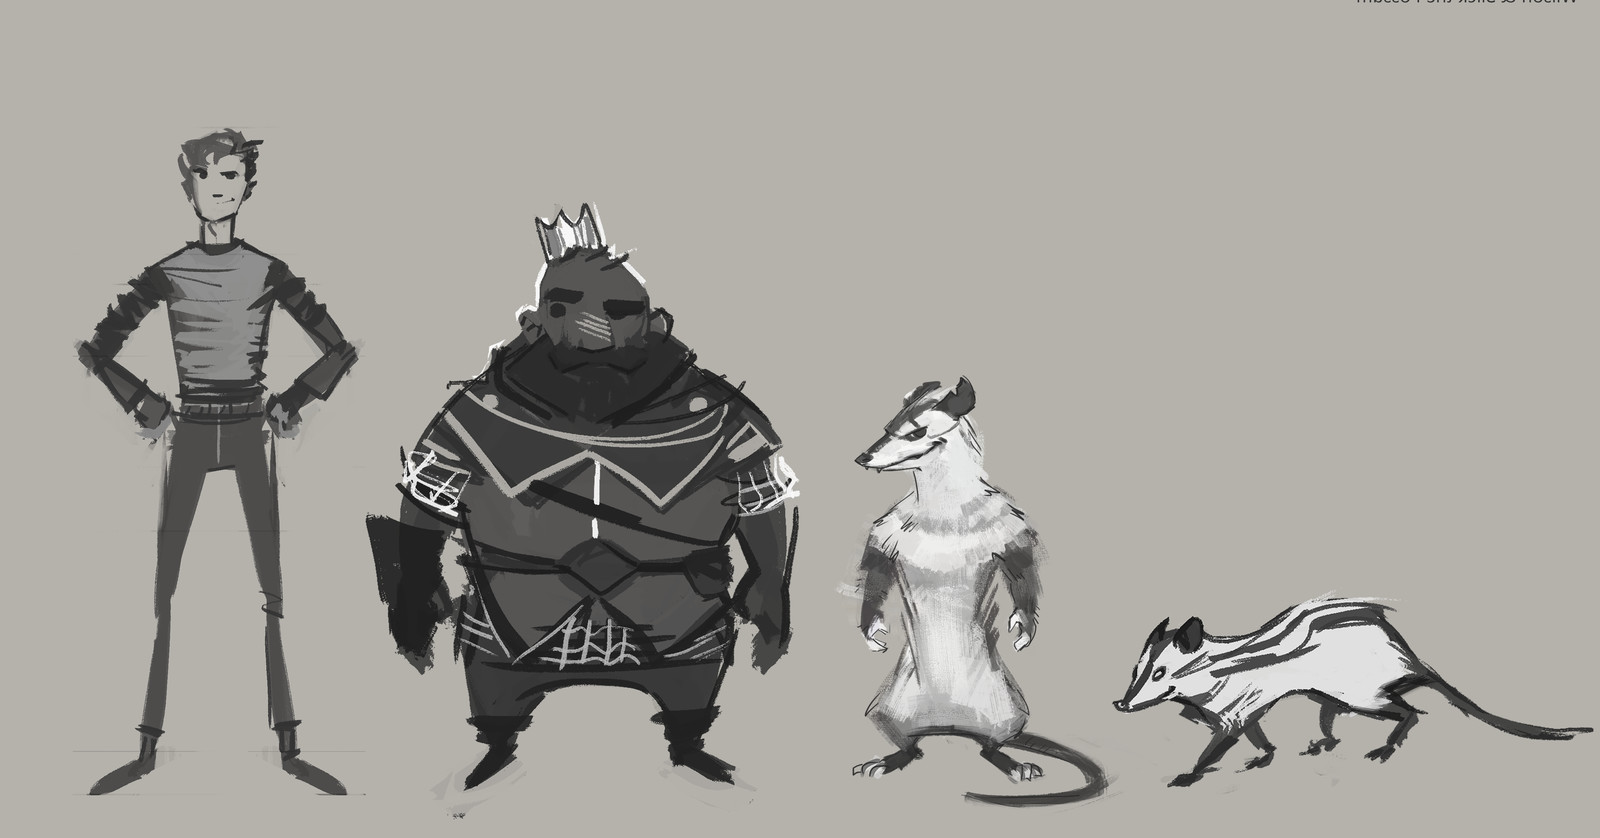 Main character (far left) Anthropomorphic version of the possum character with his four legged appearance. And a king guy!